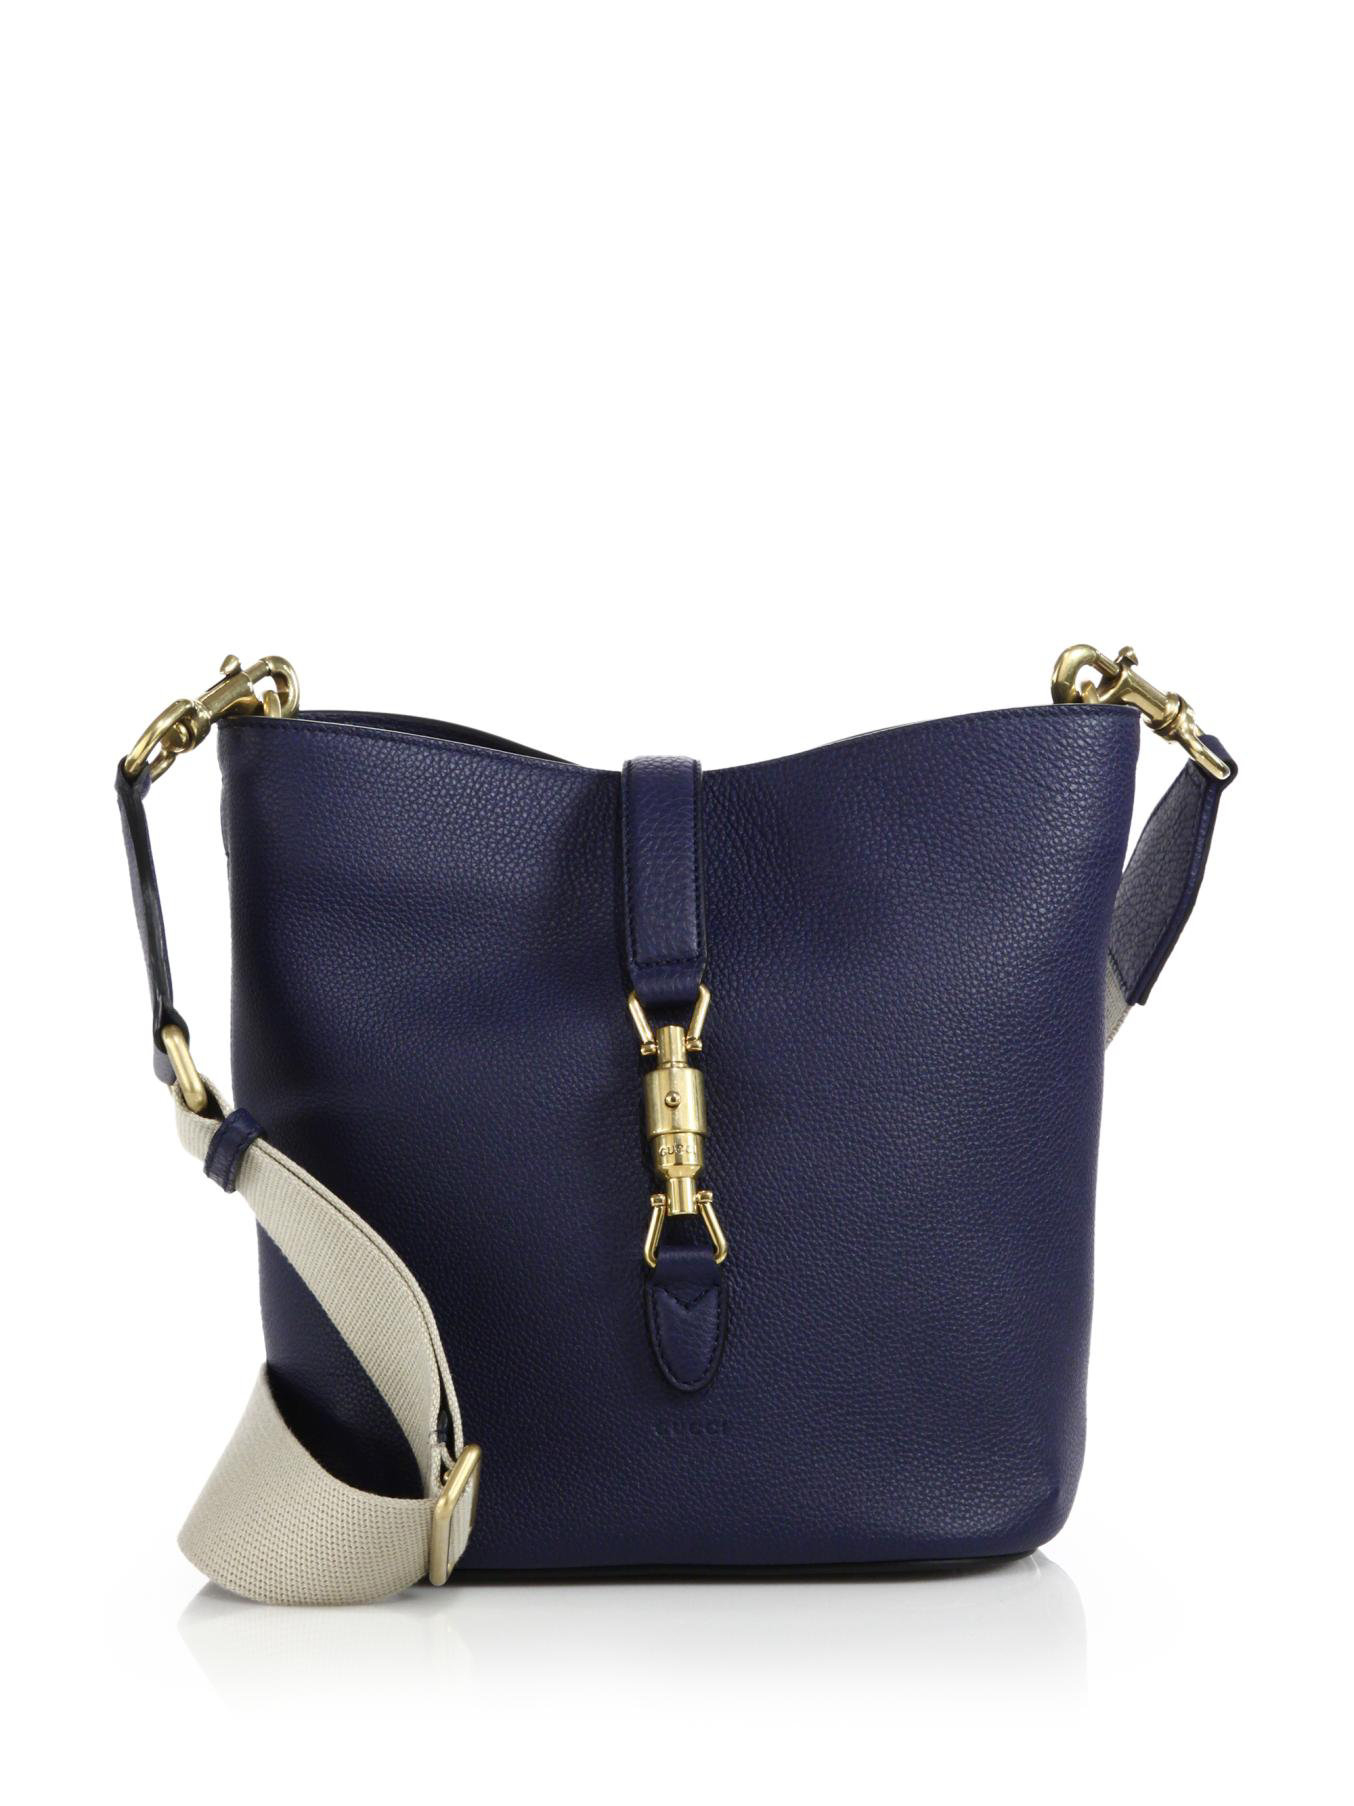 829cb216af4 Gallery. Previously sold at  Saks Fifth Avenue · Women s Gucci Bucket Bag